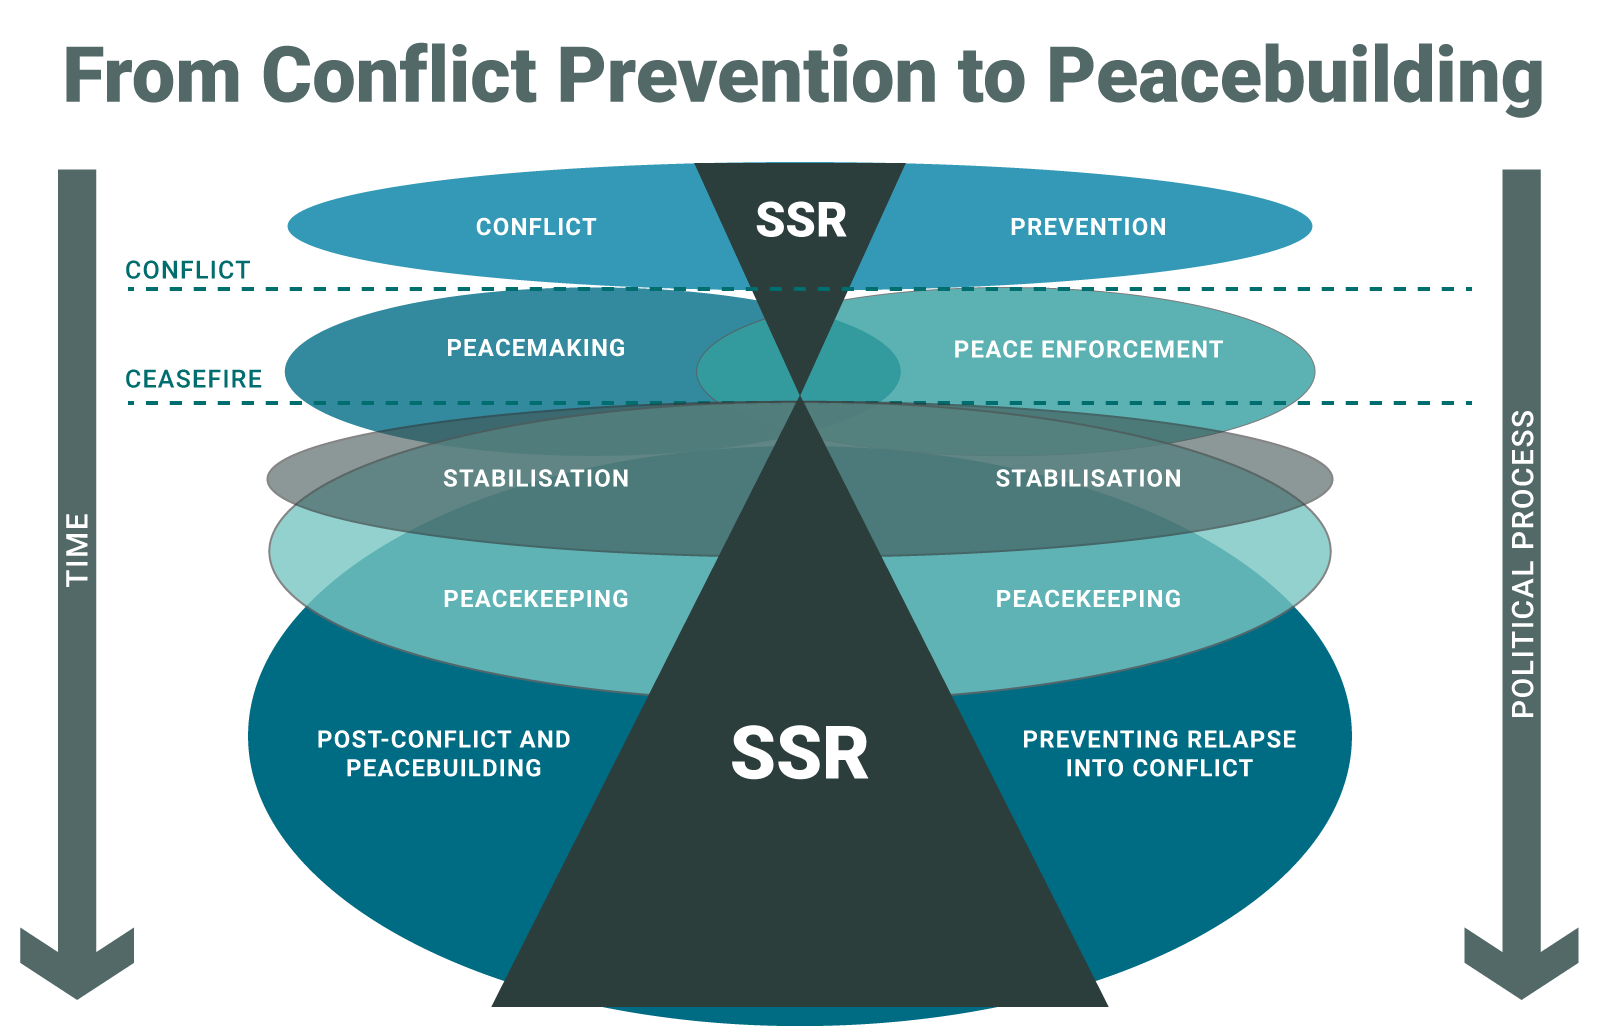 The Case for SSR as a Conflict Prevention Measure - International